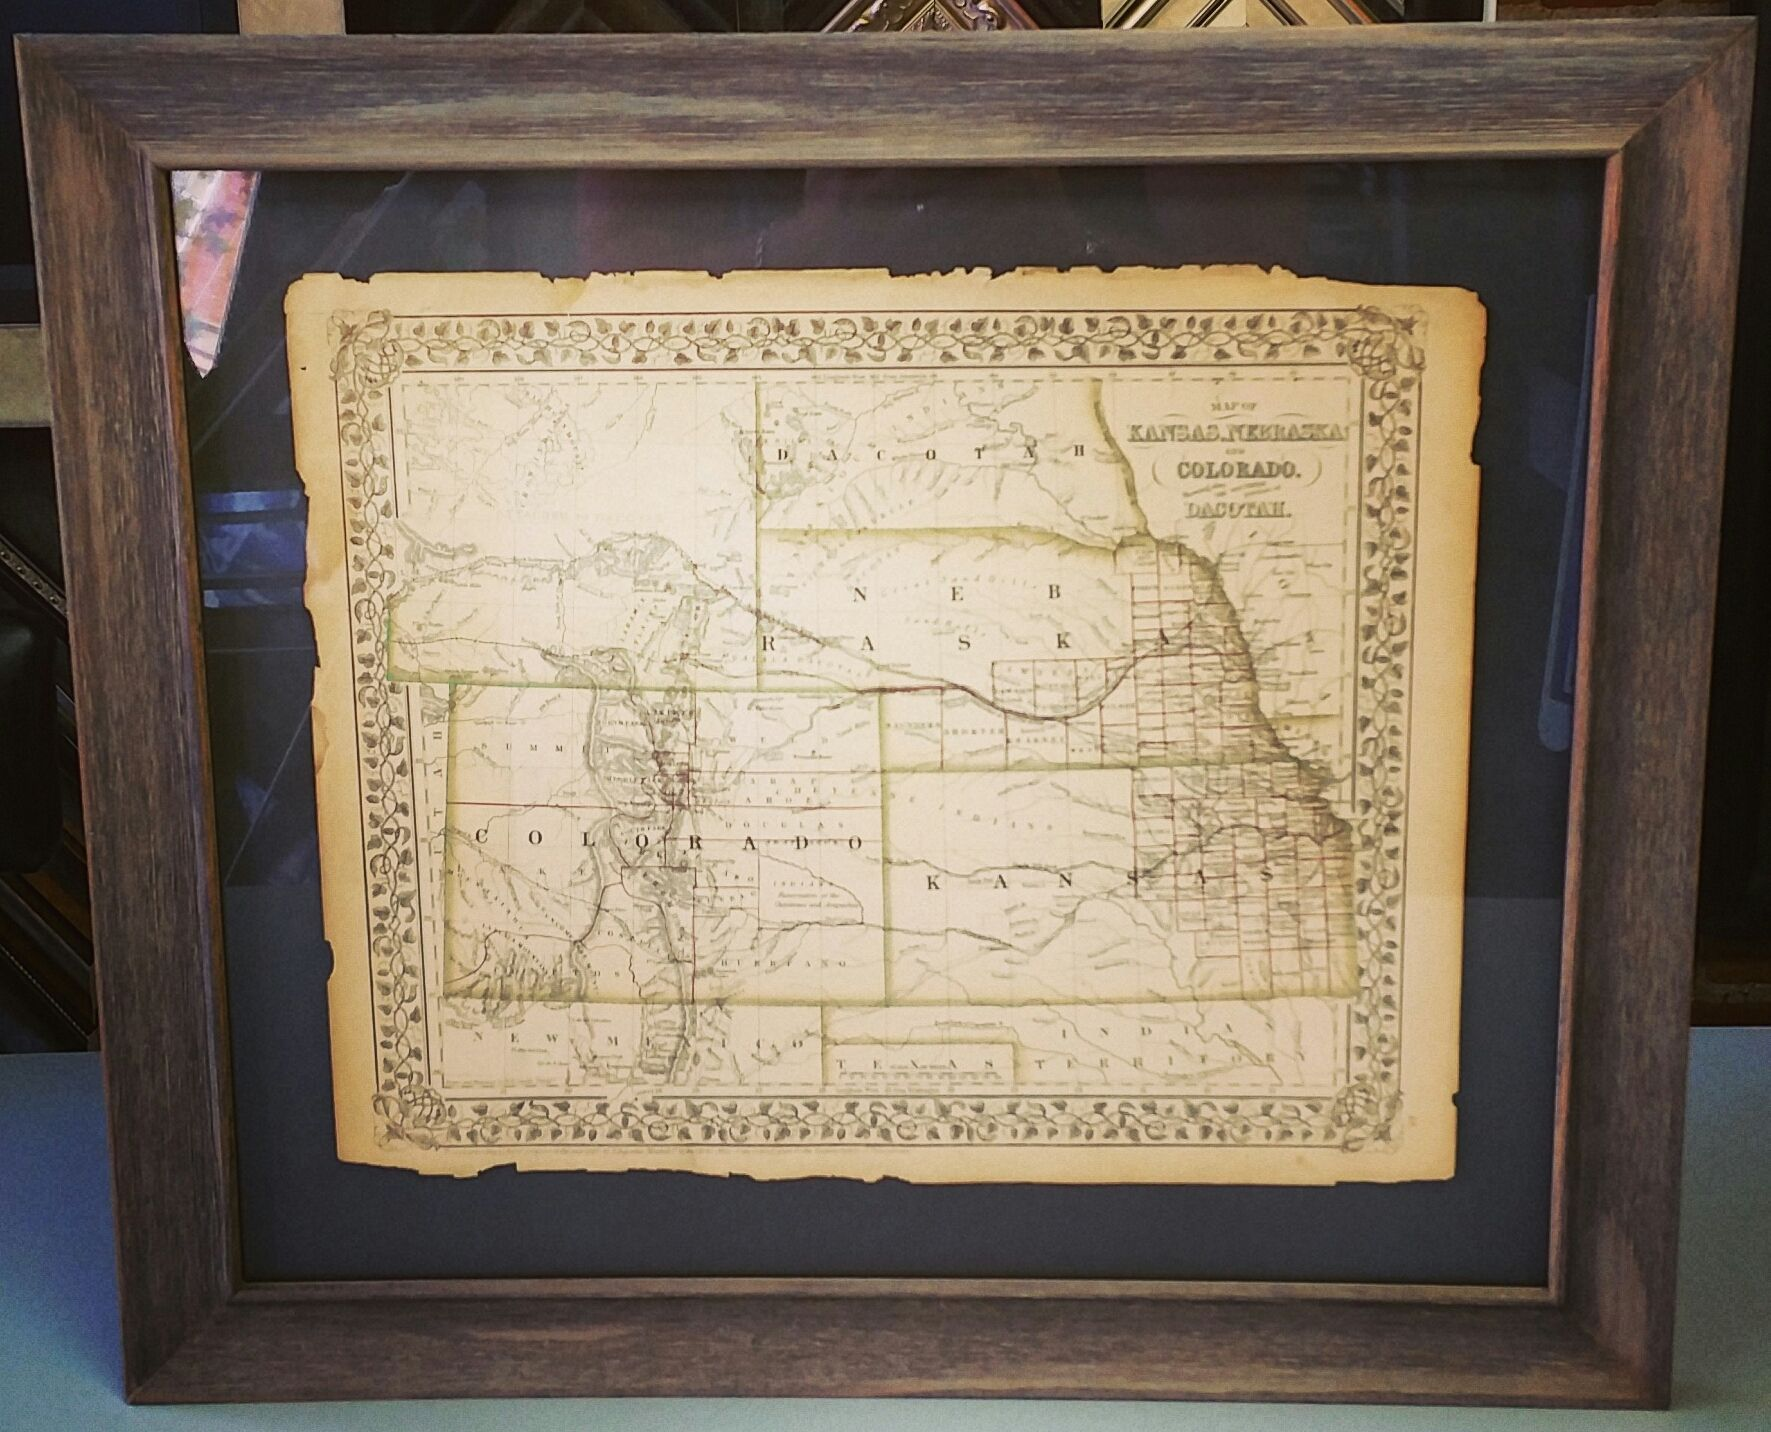 Custom Framed Map Floated On Top Of The Mat To Highlight The Tattered Edges Come See How We Can Make Your Vinta Framed Maps Framing Photography Framed Artwork